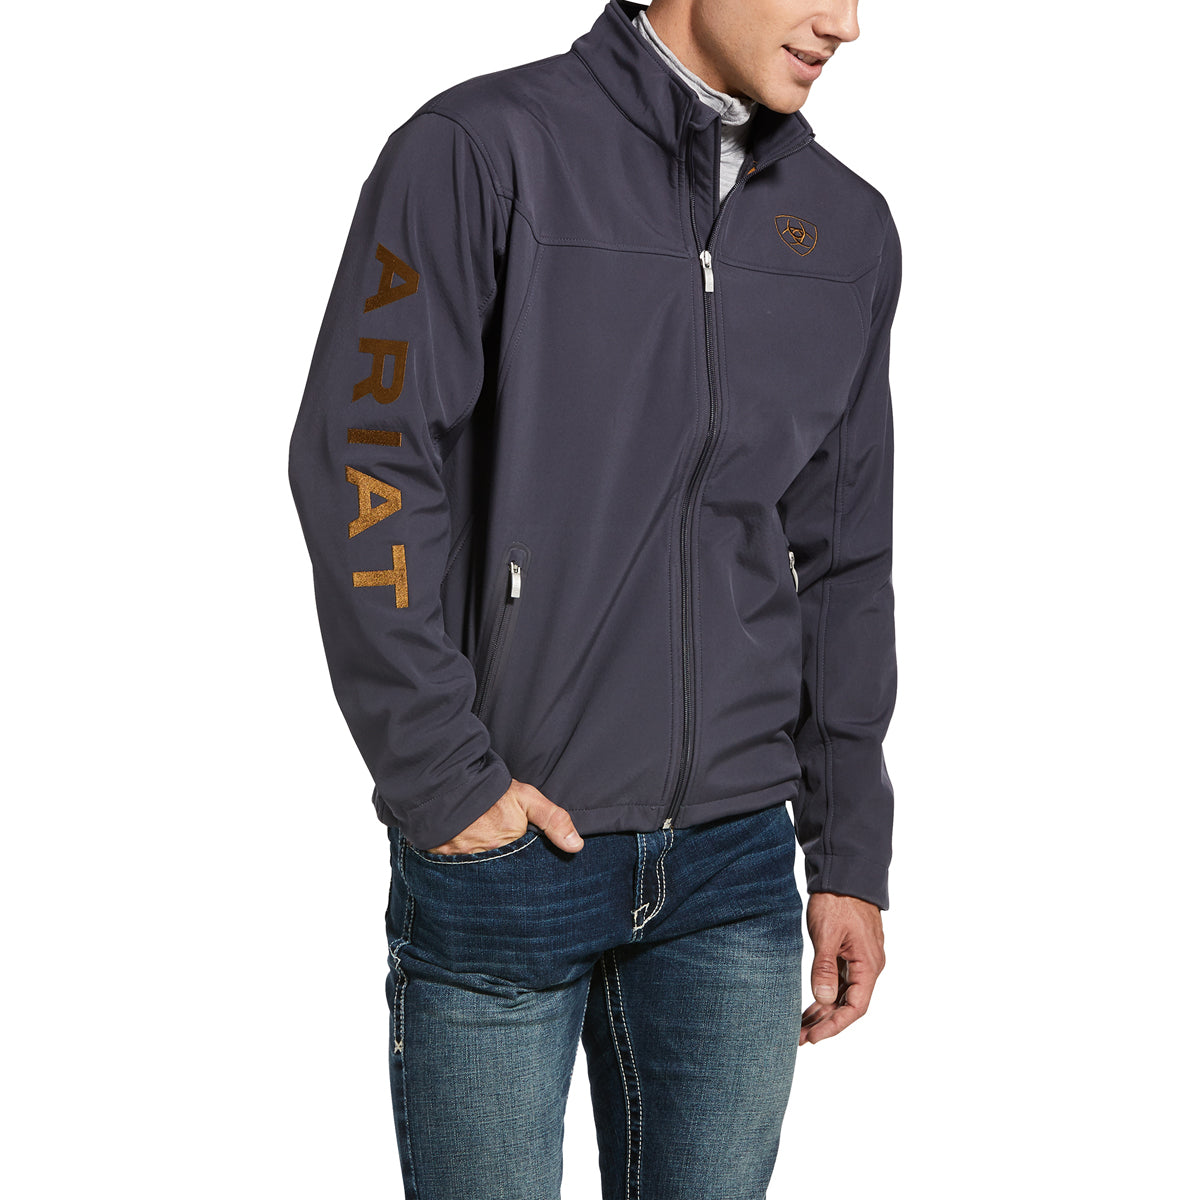 Ariat Men's New Team Softshell Water Resistant Jacket